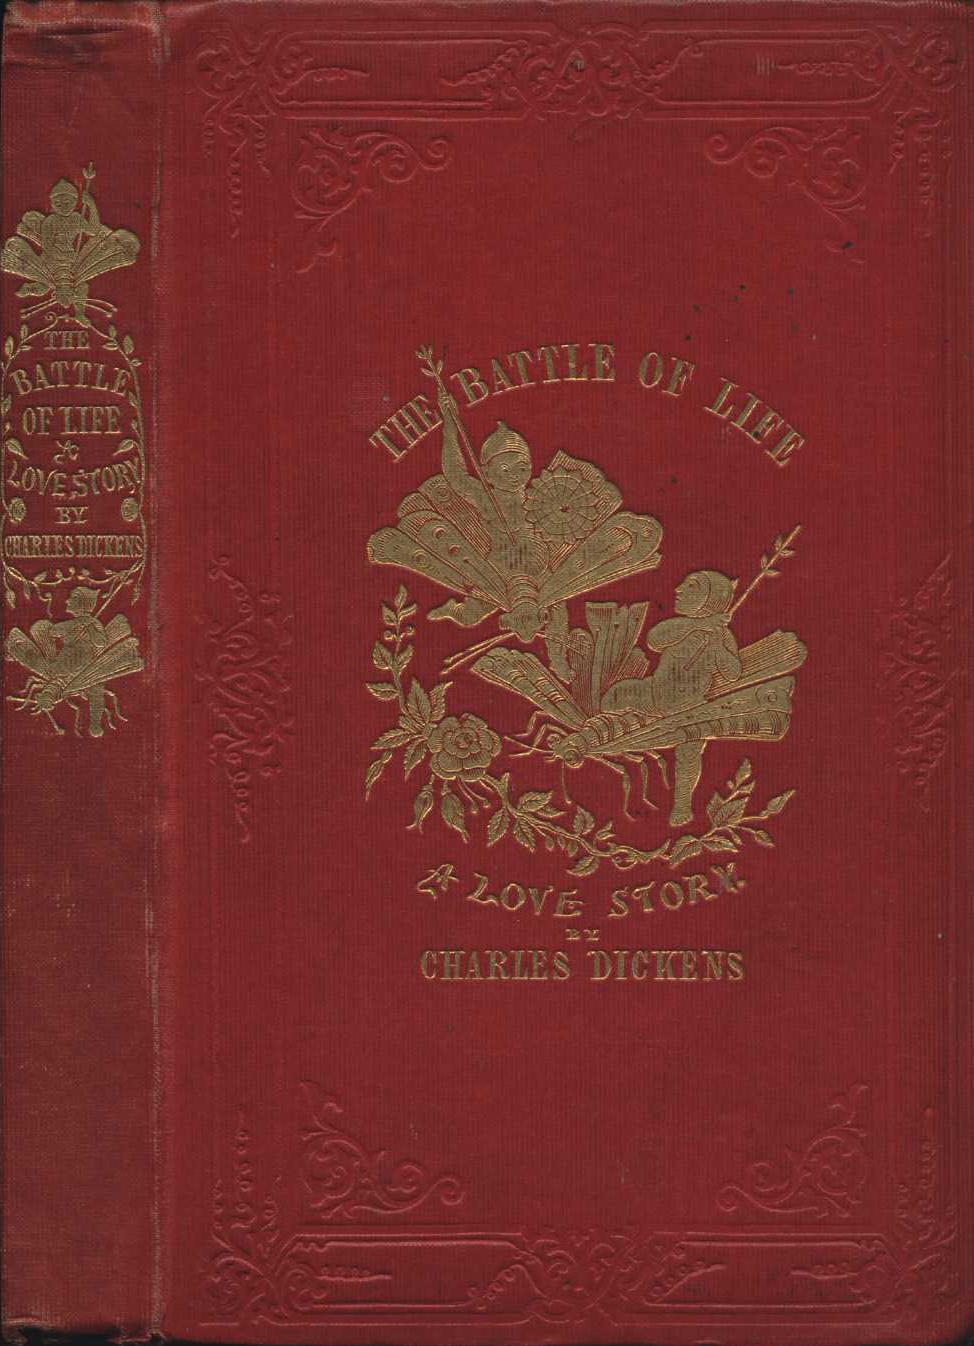 Charles Dickens. The battle of life: a love story. London: Bradbury & Evans, 1846.